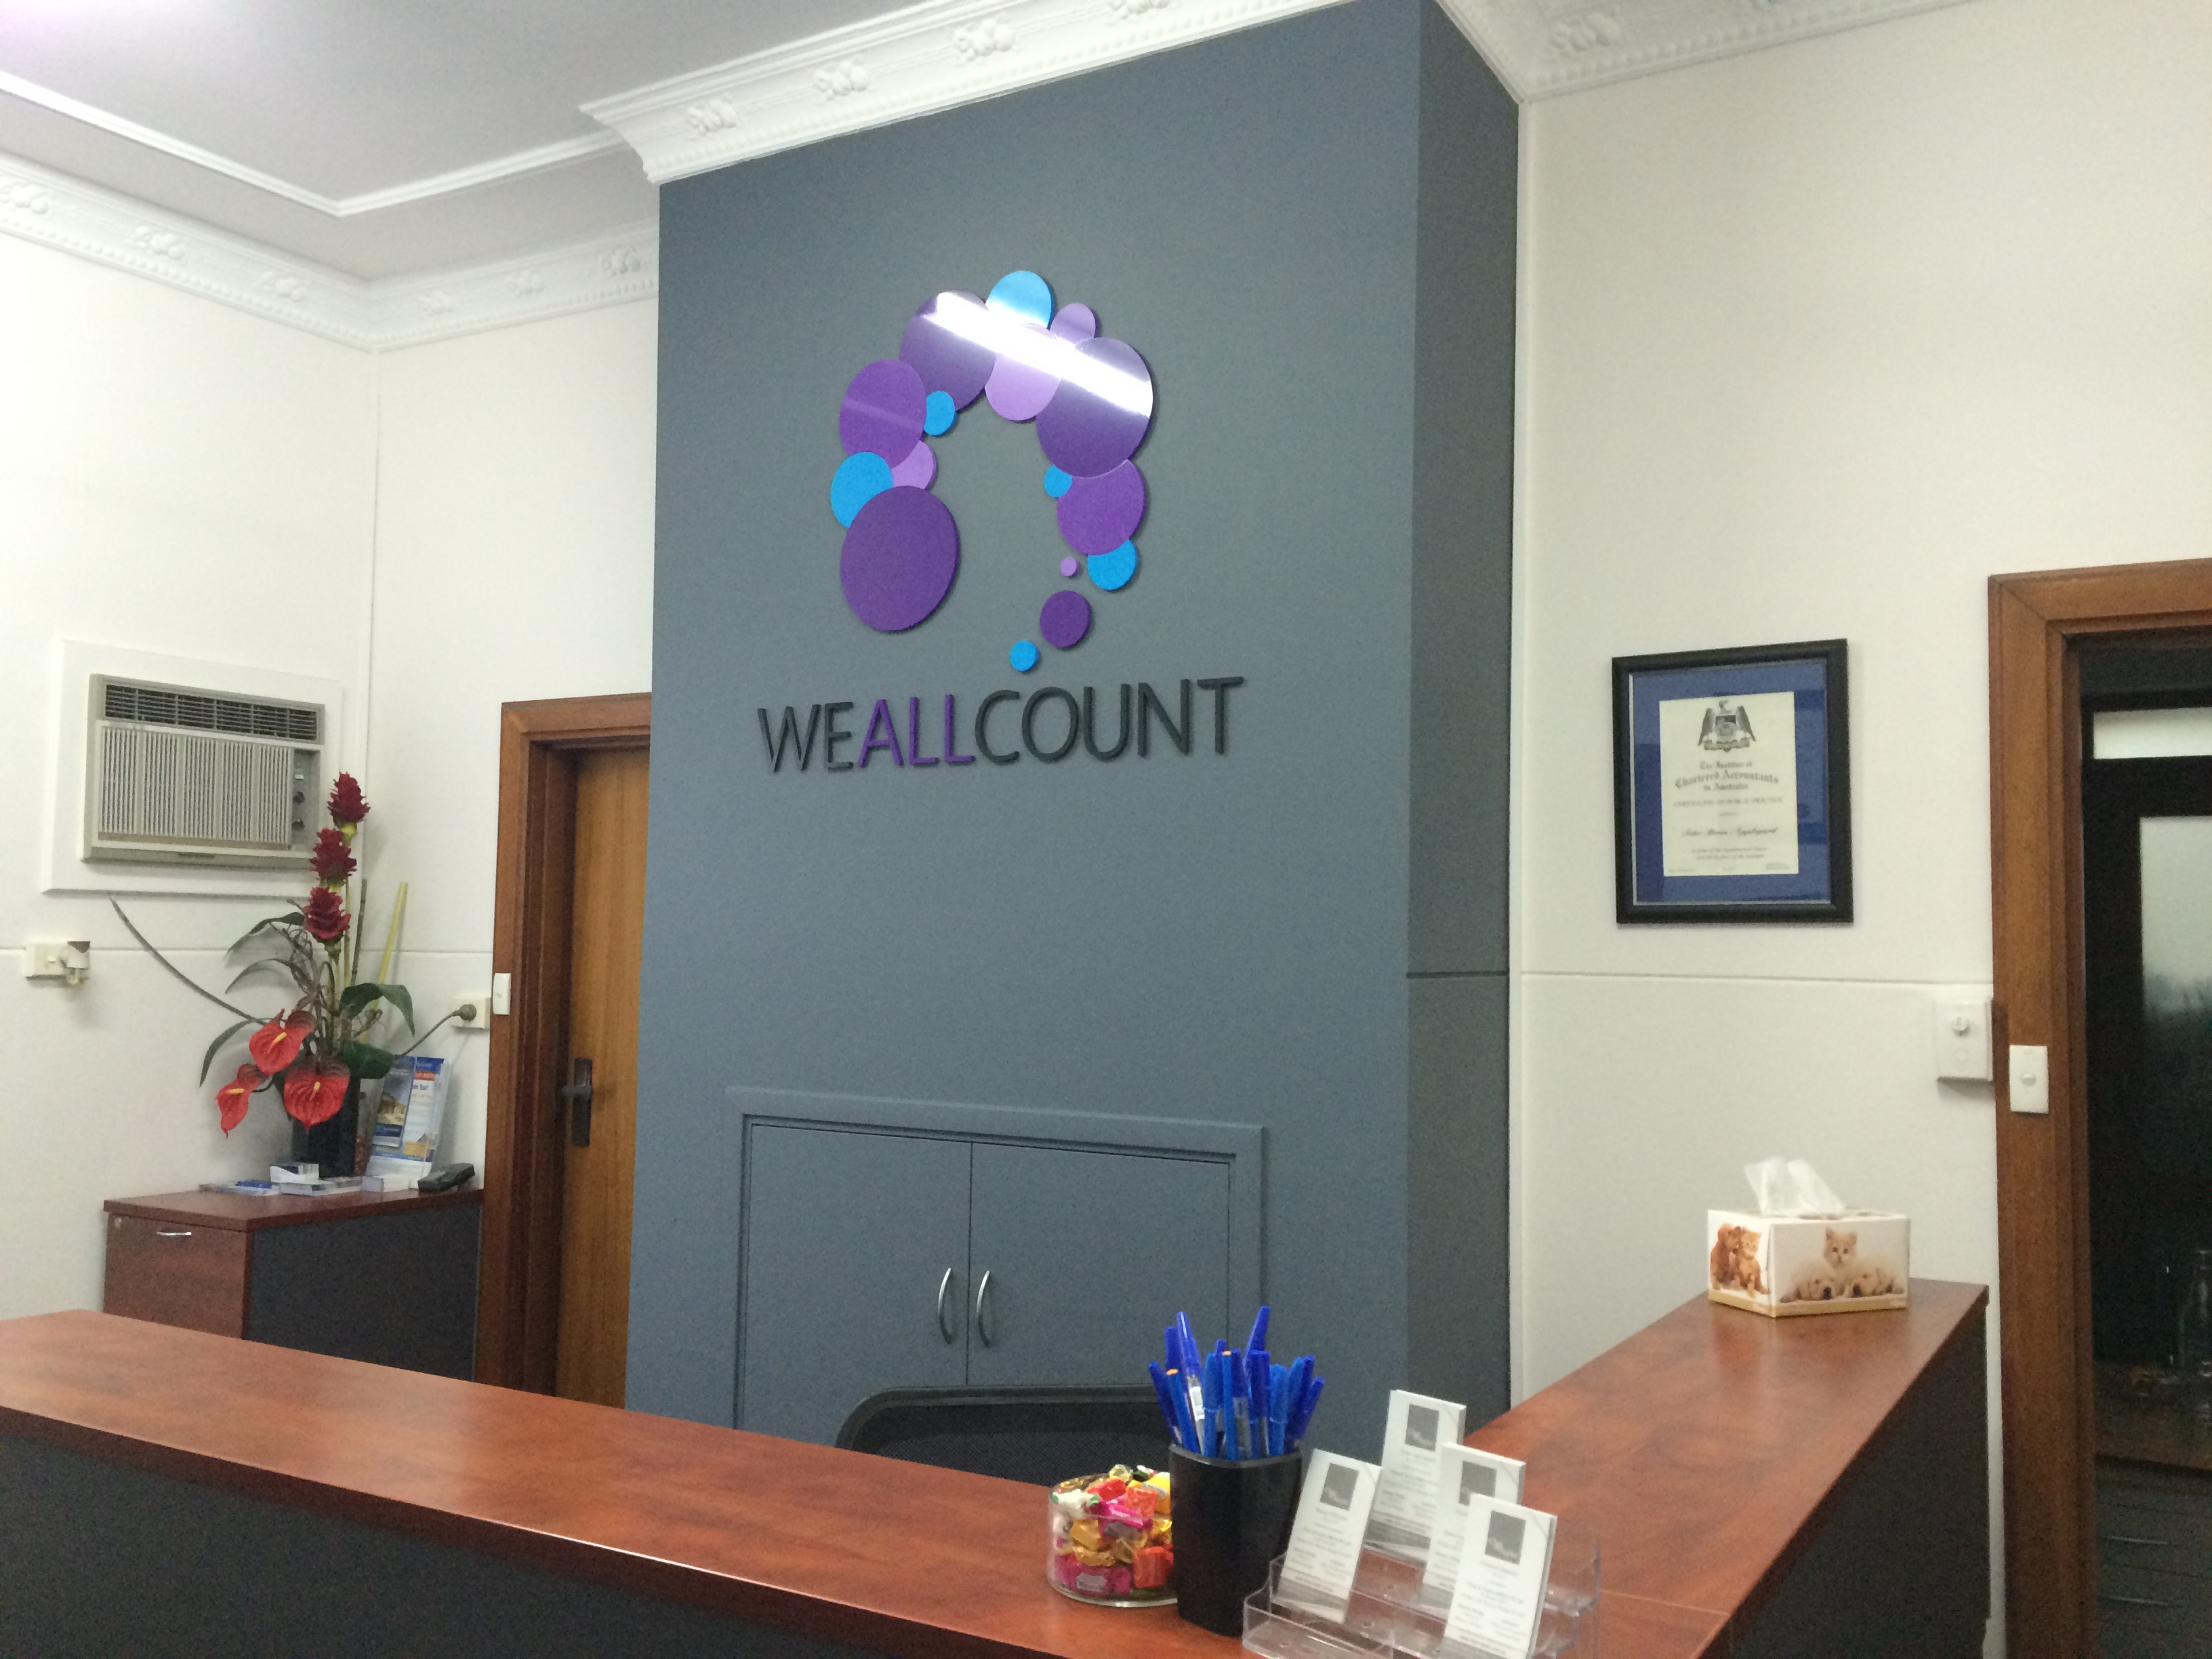 We All Count Acrylic Sign